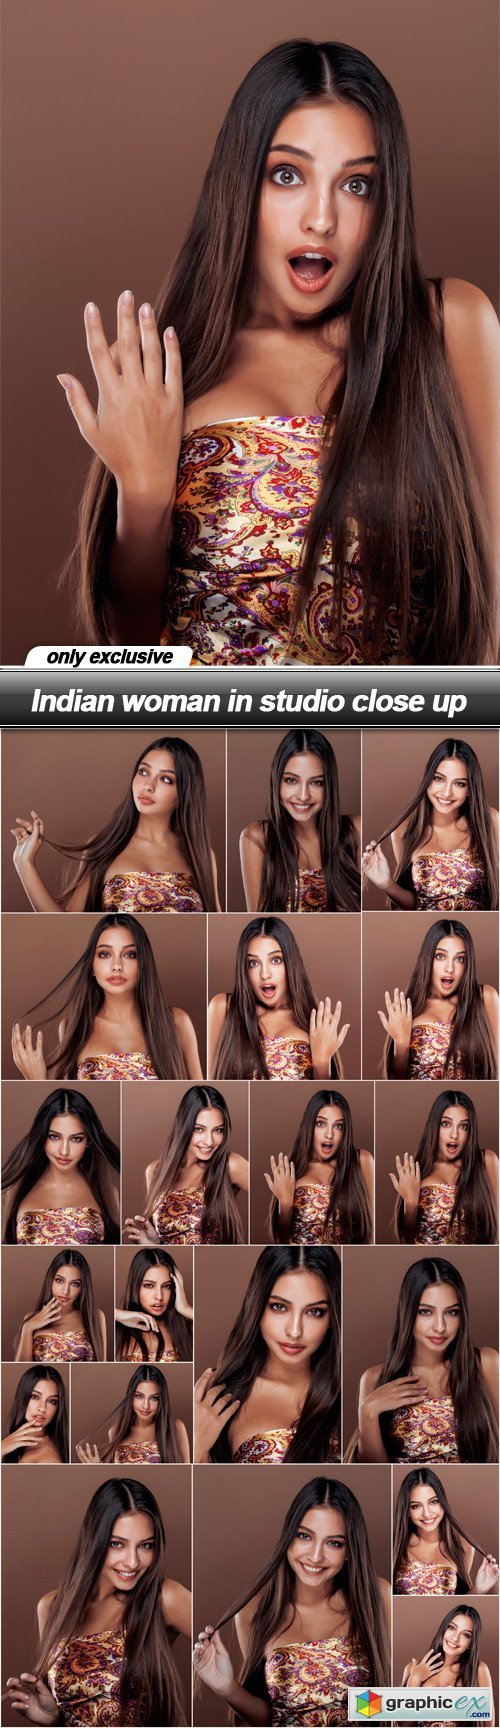 Indian woman in studio close up - 20 UHQ JPEG